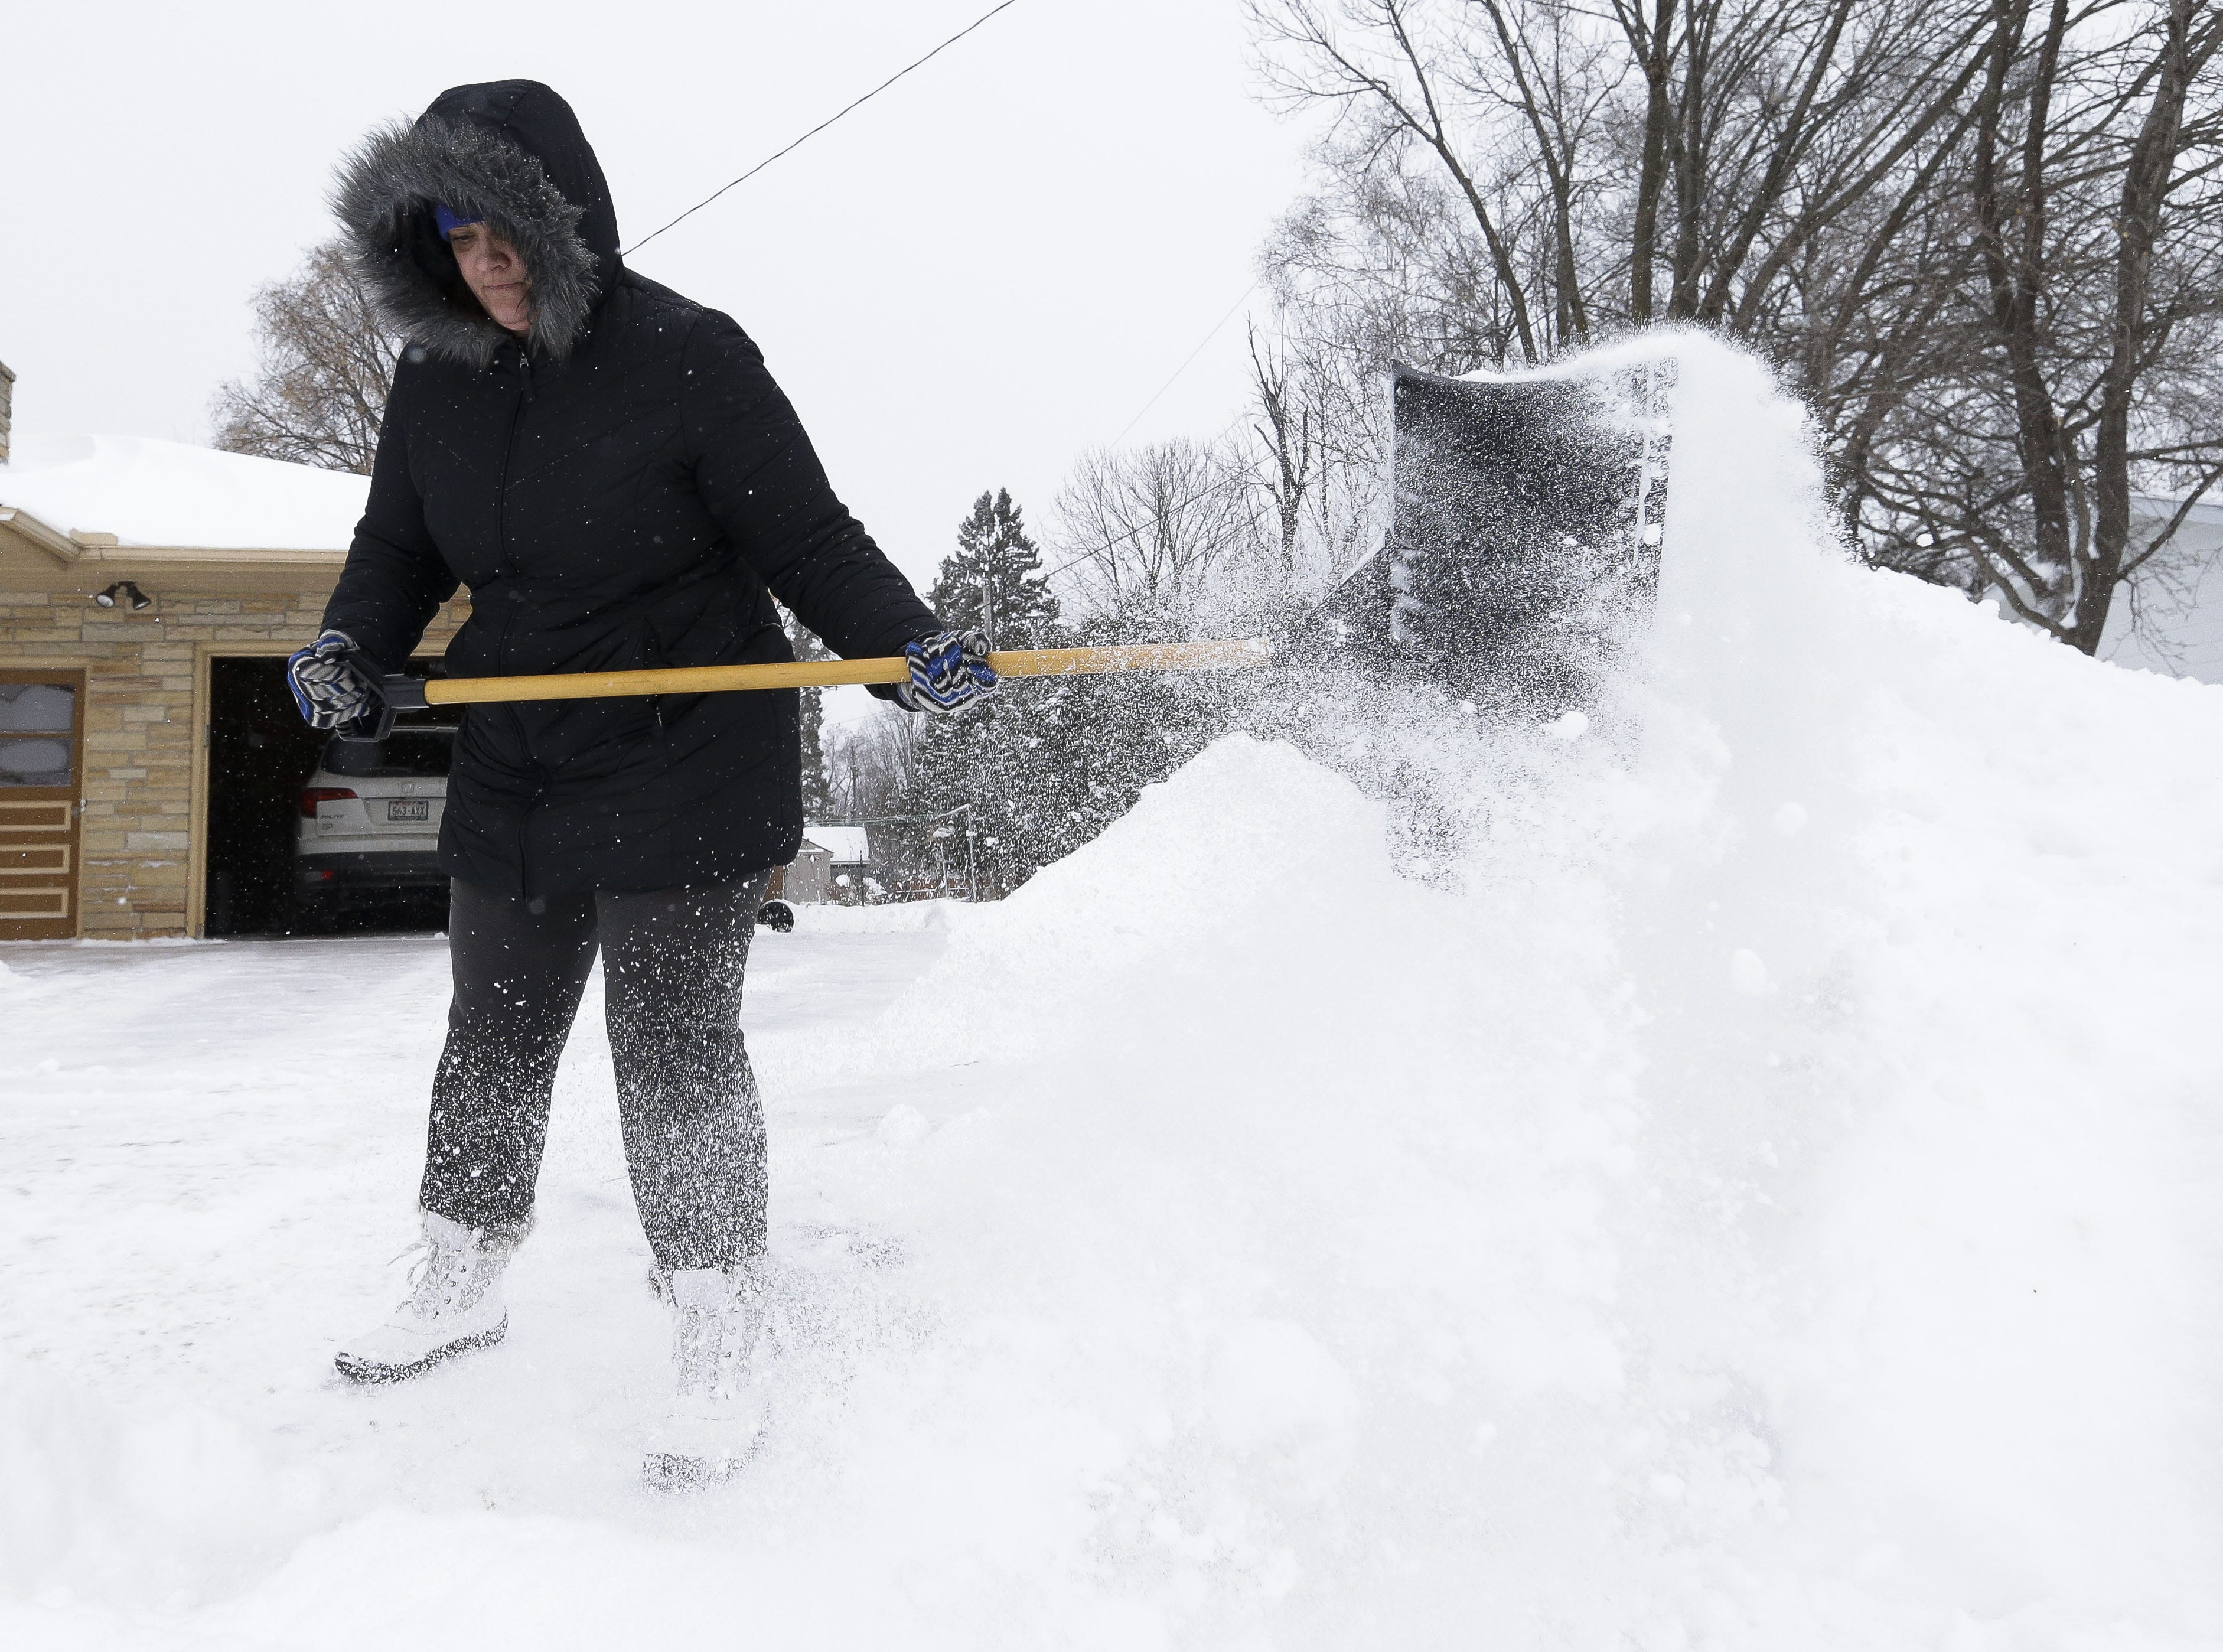 Jennifer Nickel shovels out her driveway on Monday, Jan. 28, 2019, in Stevens Point, Wis. A winter storm rolled through Wisconsin on Sunday and Monday, marking the first major snowfall of the season.